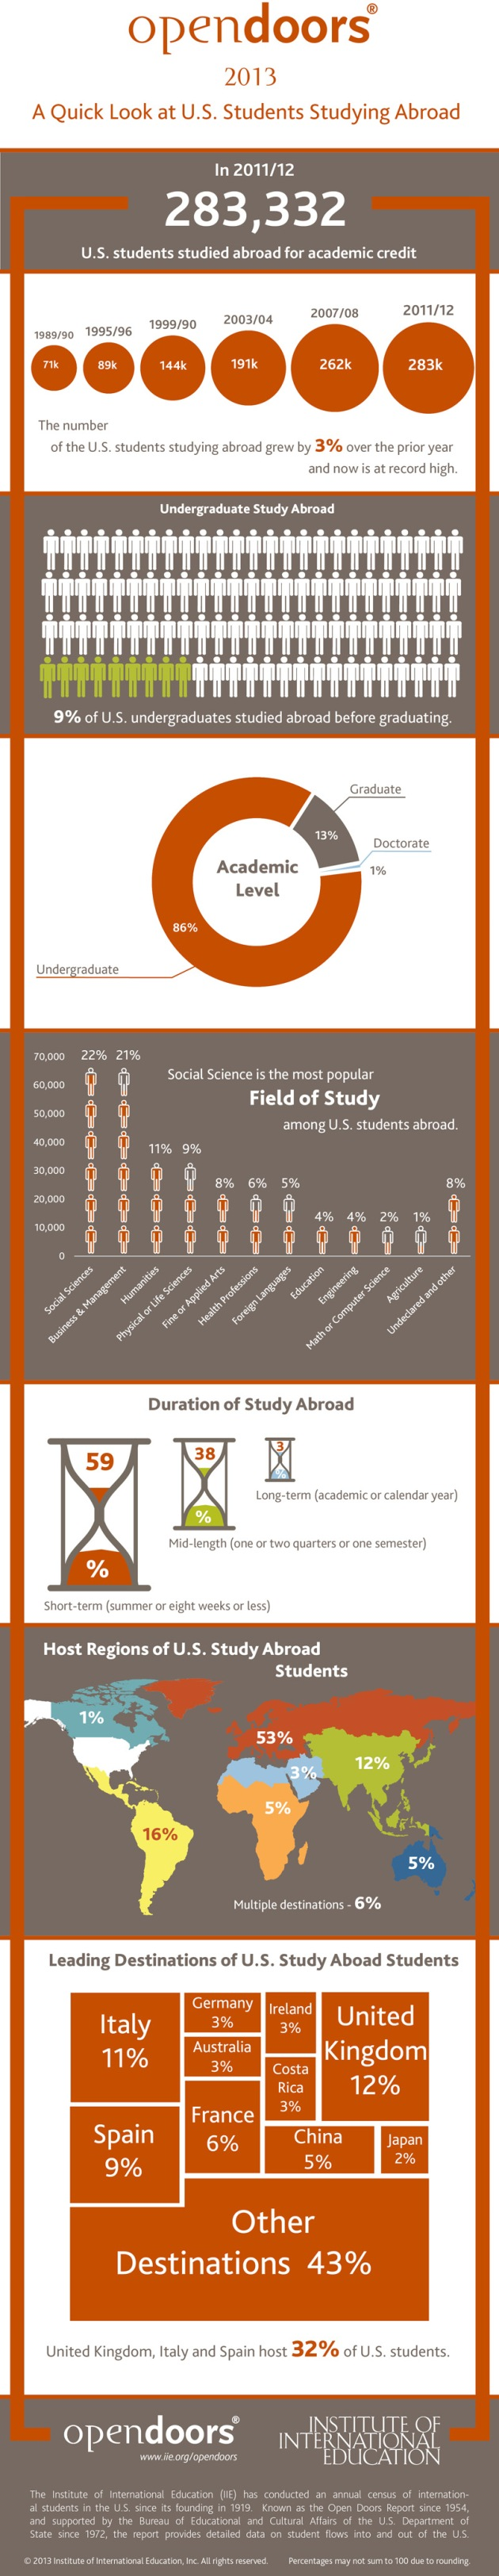 OT-Open-Doors-2013-US-study-abroad-Infographic